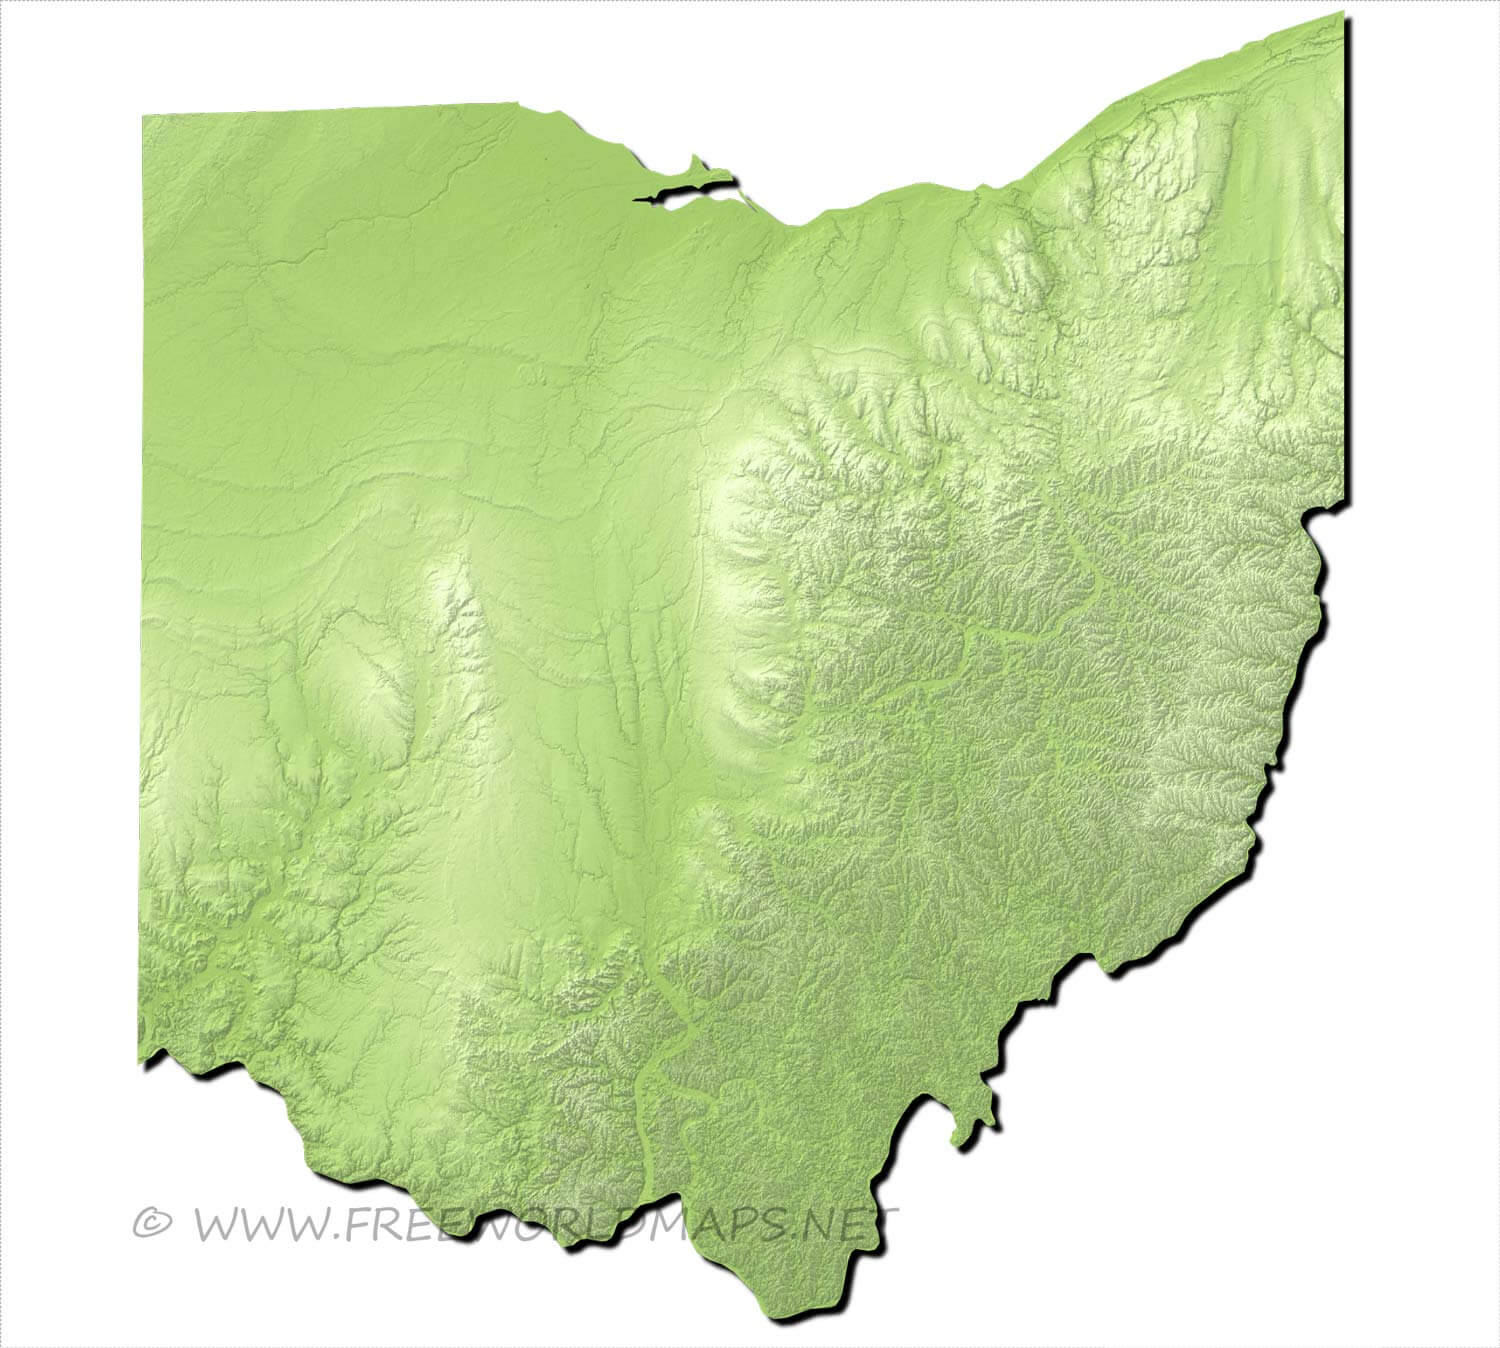 Physical map of Ohio on map of mountains in kentucky, agenda 21 map of kentucky, diagram of landforms for kentucky, water map of kentucky, current map of kentucky, scale map of kentucky, region map of kentucky, latitude and longitude map of kentucky, color map of kentucky, terrain map of kentucky, physiographic provinces of kentucky, detailed map of kentucky, landforms from kentucky, large map of kentucky, physical map of kentucky, elevation map of kentucky, map of southern kentucky, soil map of kentucky, mountain ranges map of kentucky, natural map of kentucky,